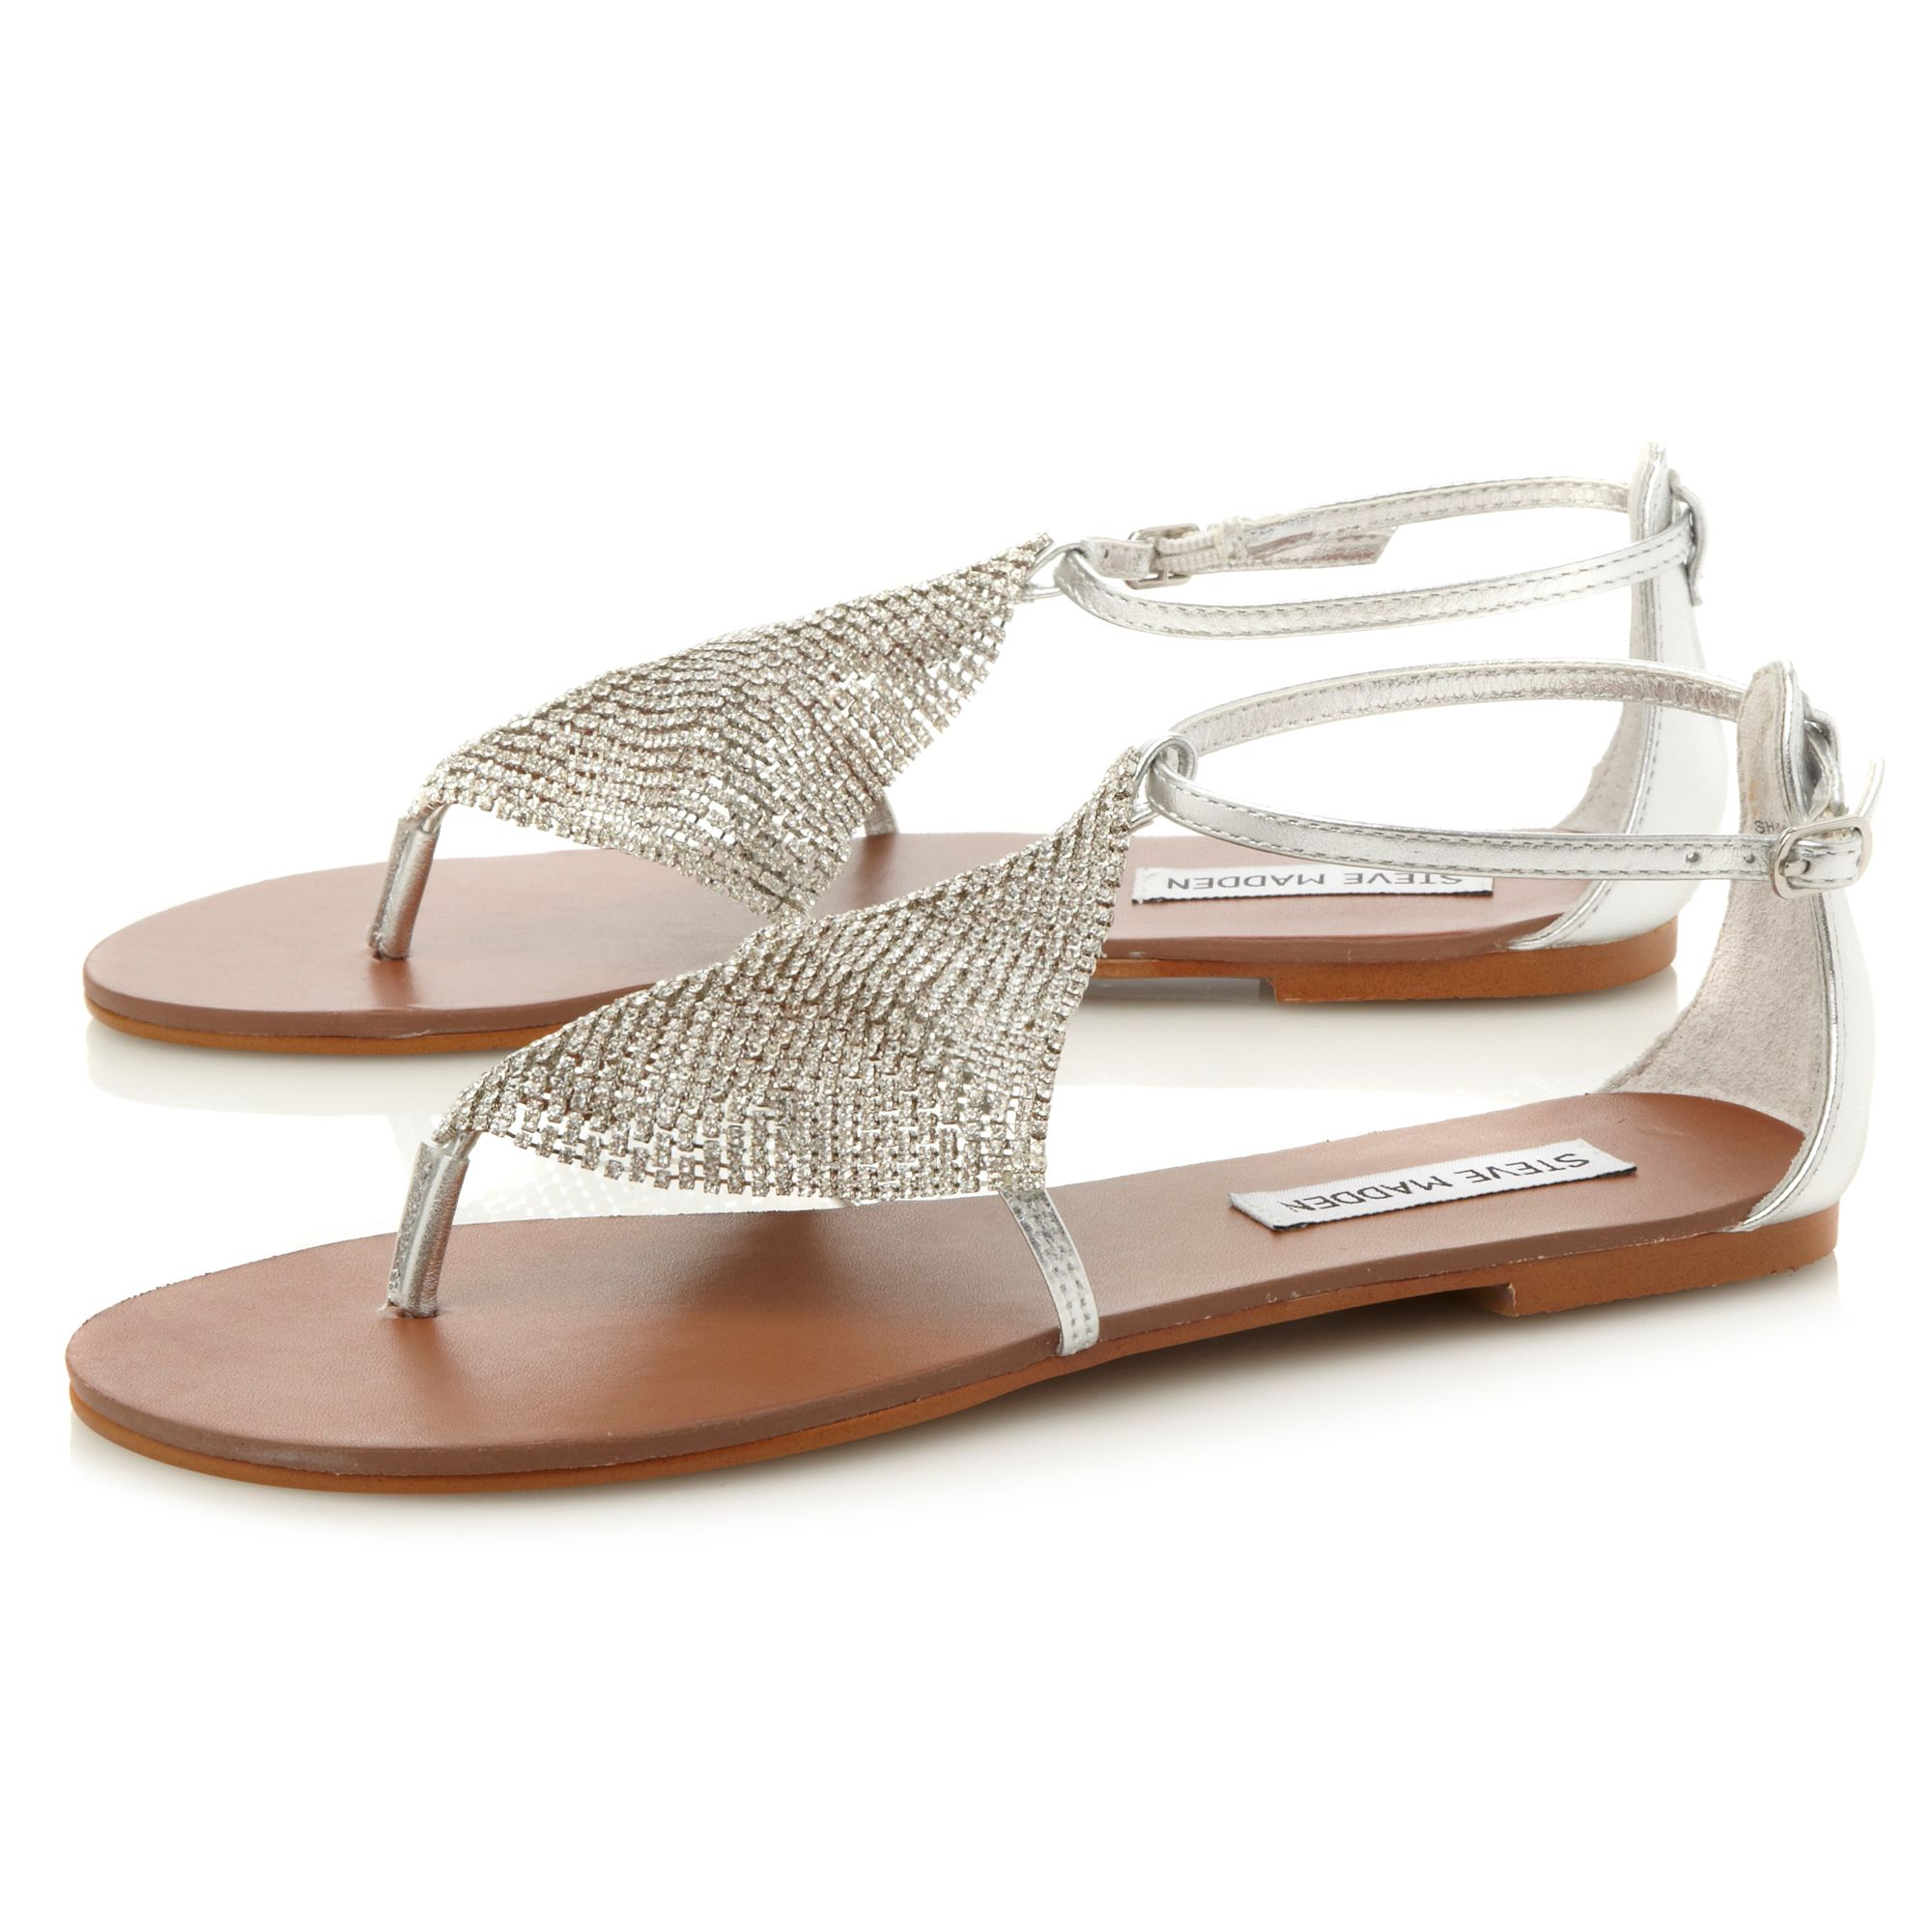 Steve madden Shineyy Diamante Toe Thong Flat Sandals in ...